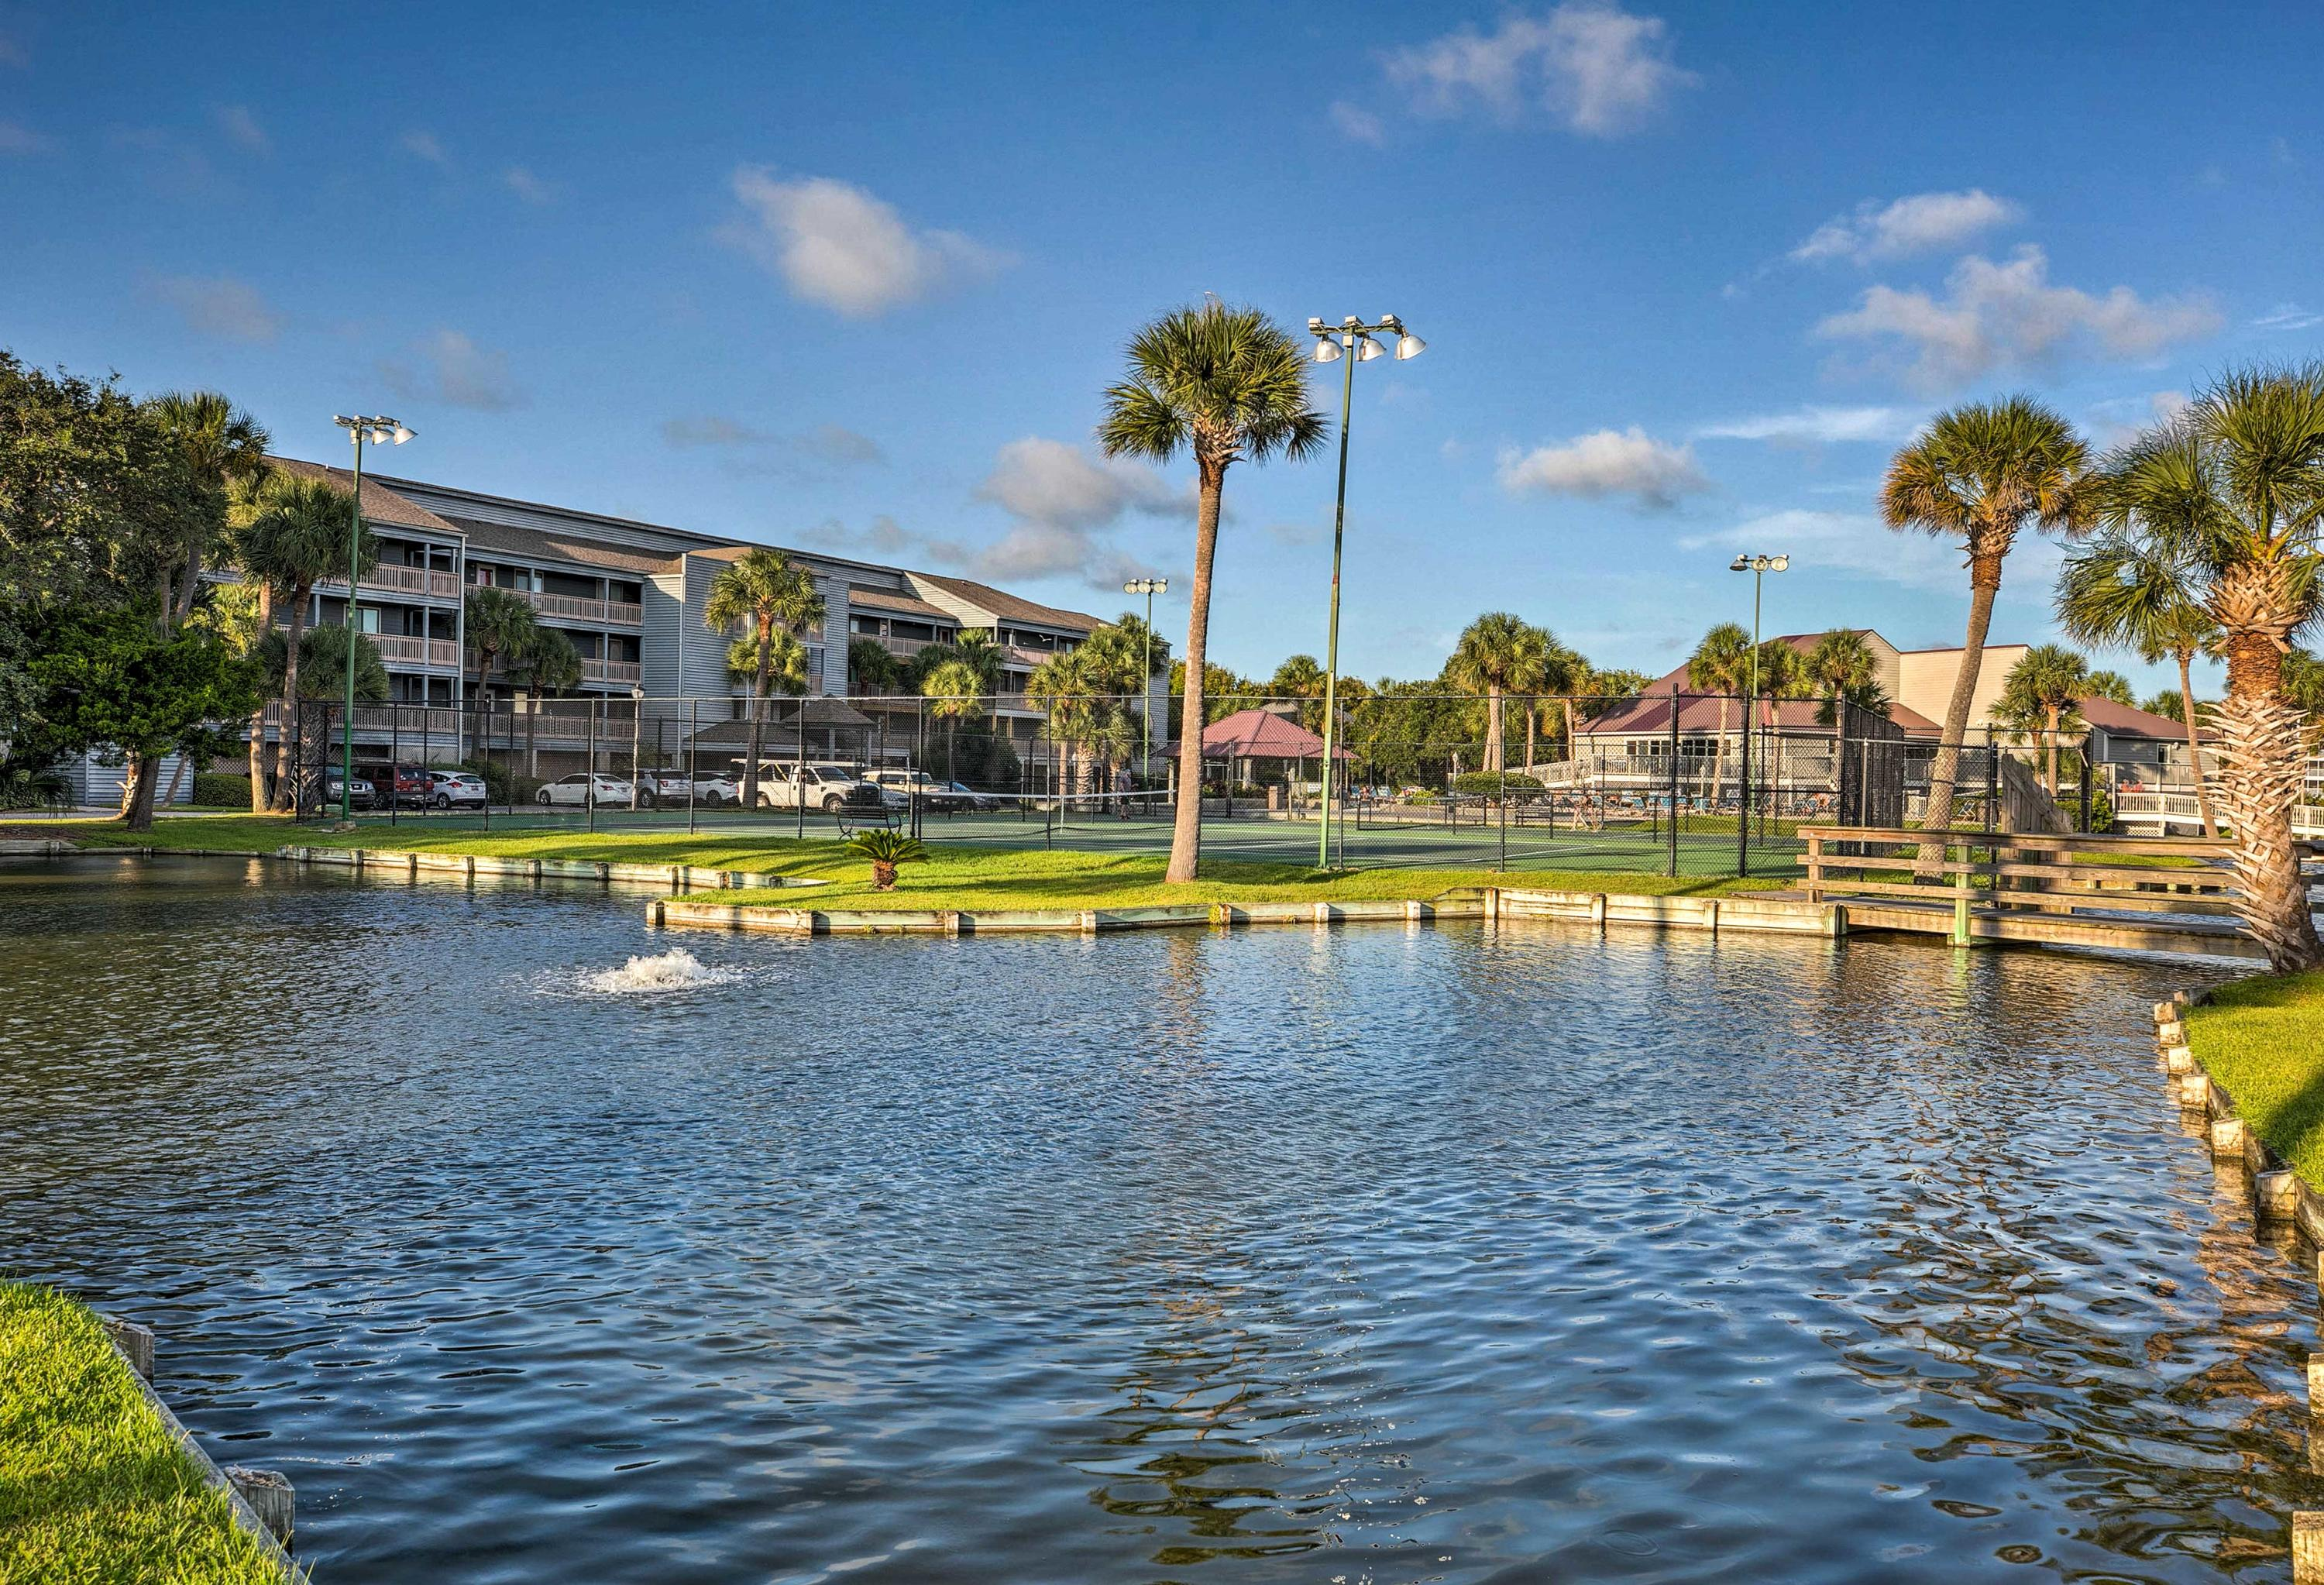 Mariners Cay Homes For Sale - 93 Mariners Cay, Folly Beach, SC - 7